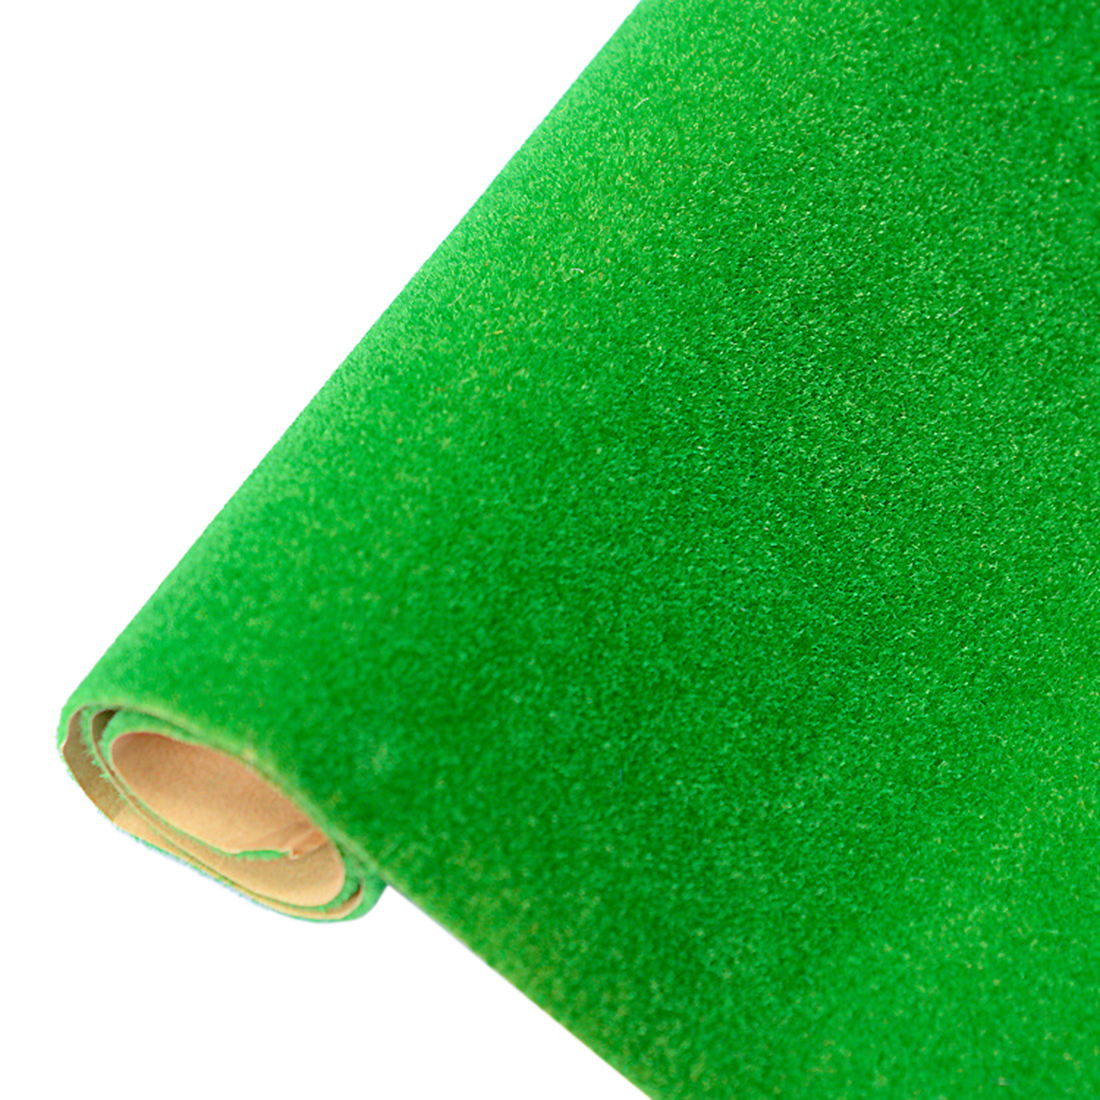 41X100cm Artificial Grassland Grass Lawn Turf Grass DIY Railway Model Sand Table Model Decor - Medium Green 2